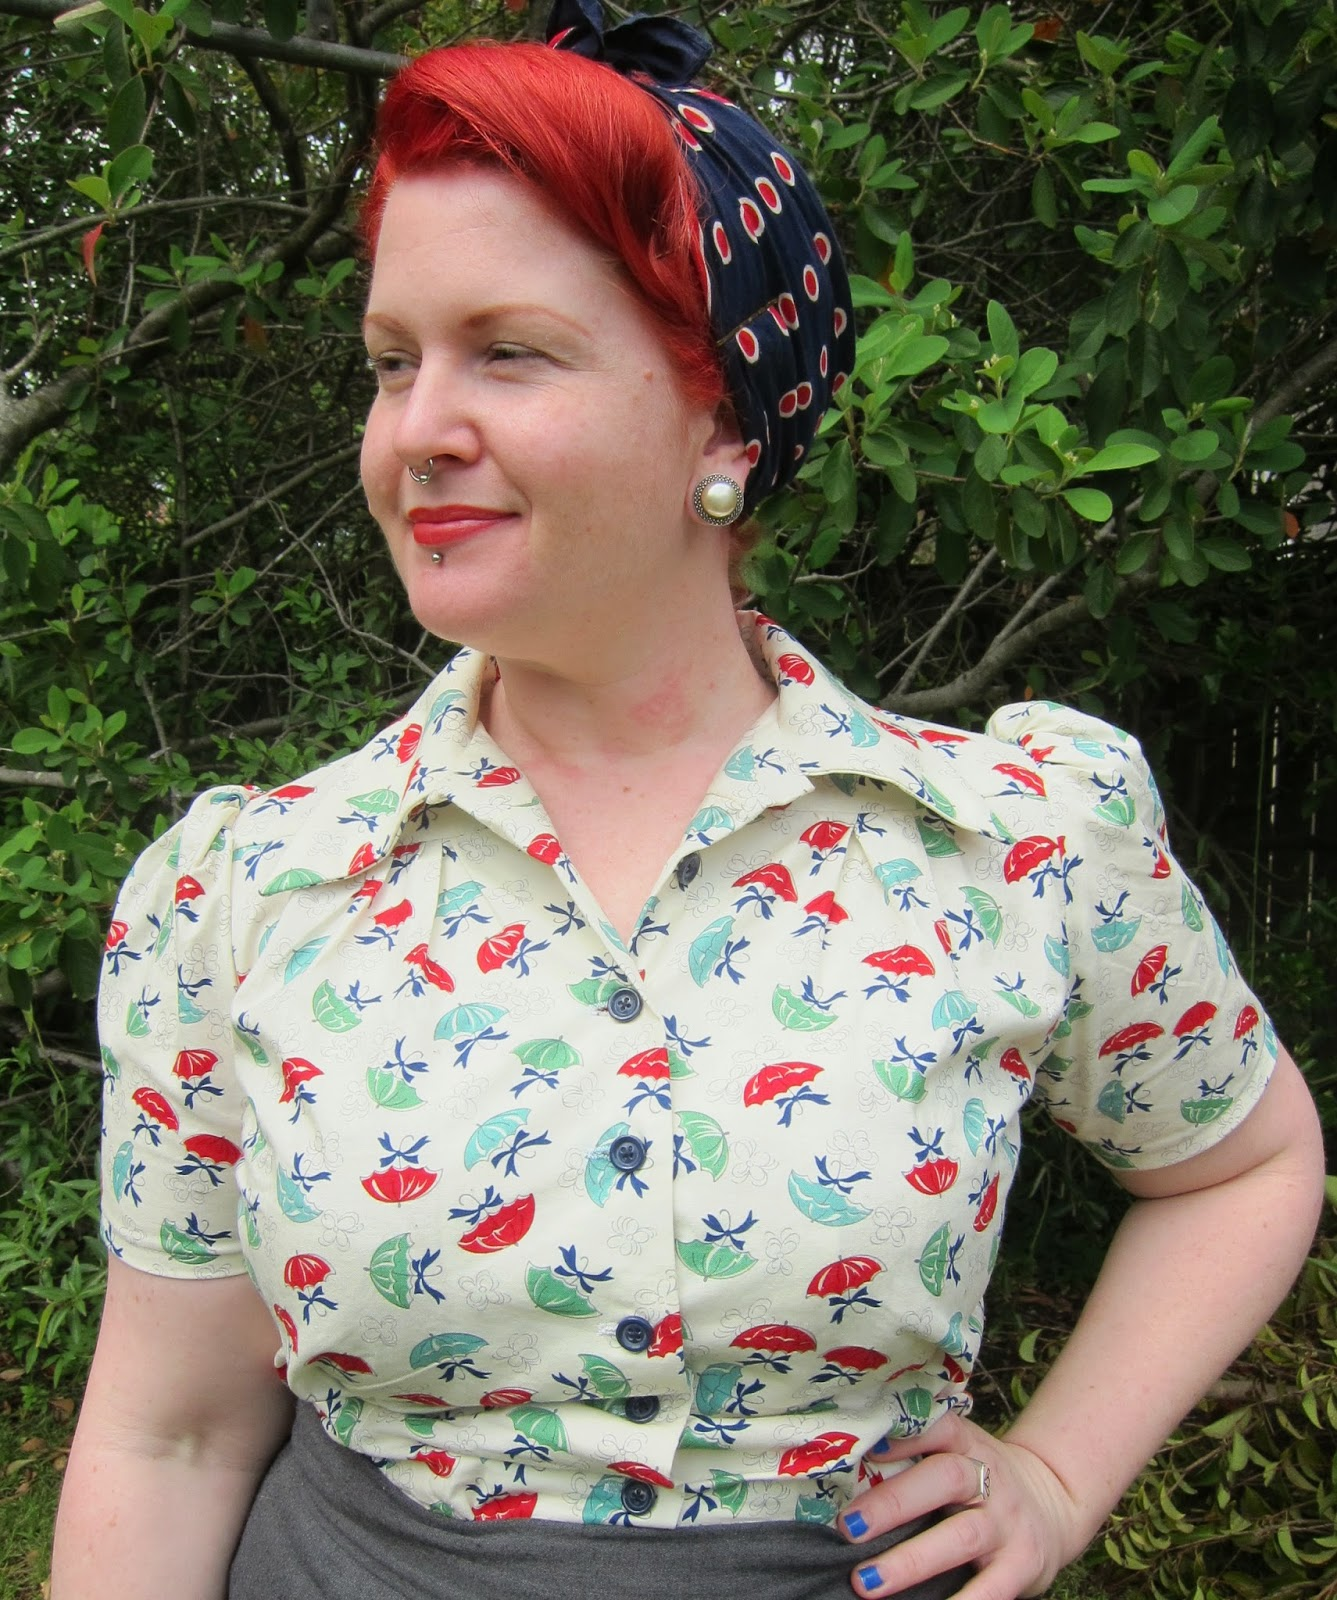 1940s smooth sailing blouse novelty fabric shirt wearing history moda fabric april showers